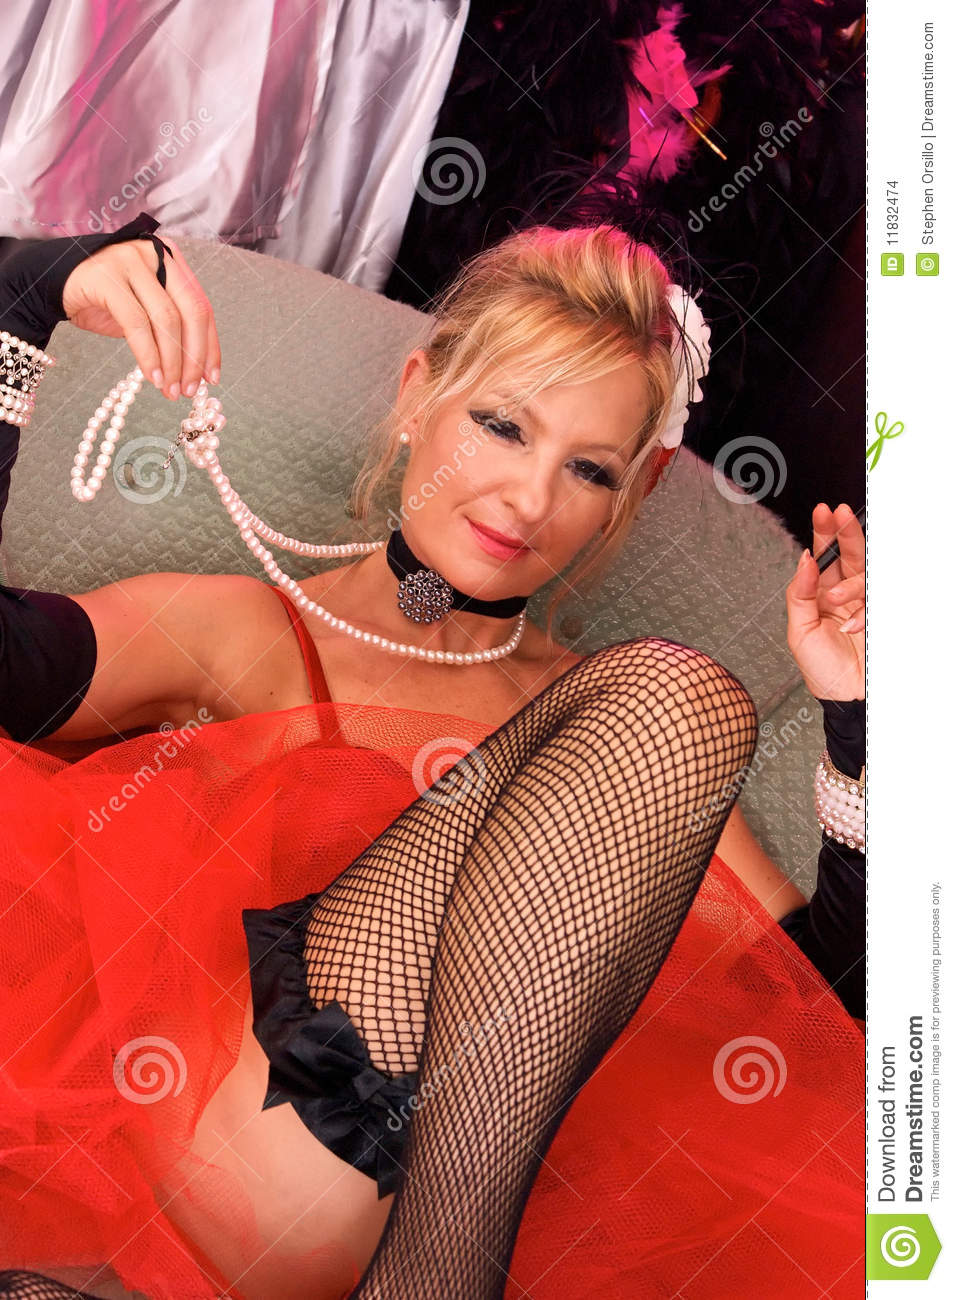 ... elf or mrs. claus for christmas, looking directly at viewer. Shot with